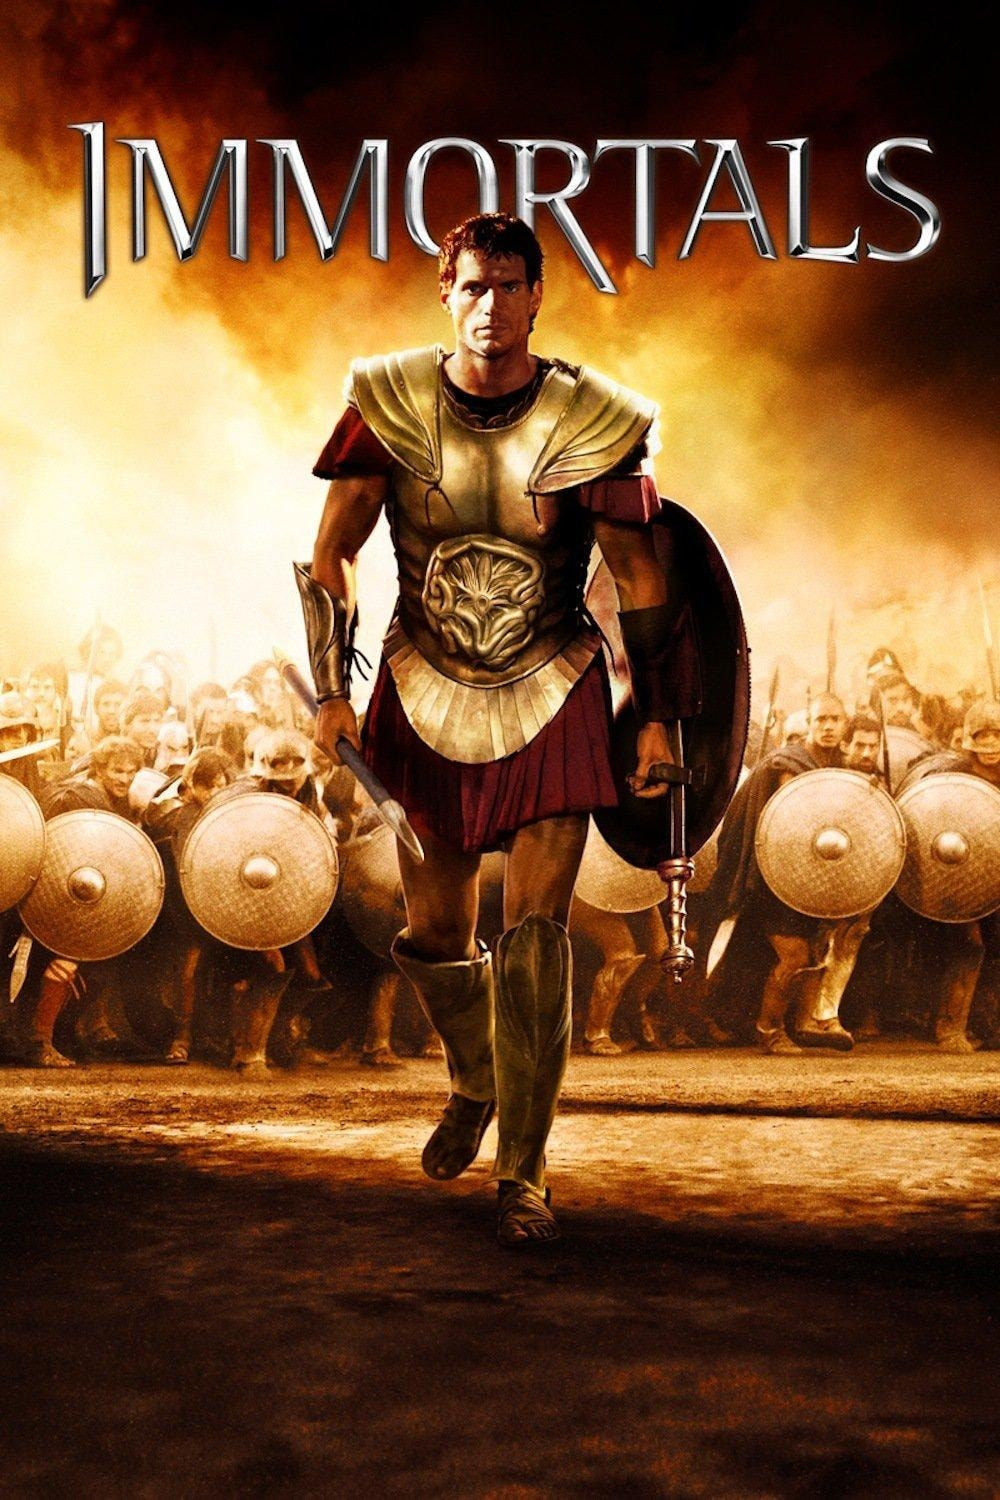 immortals movie online free download